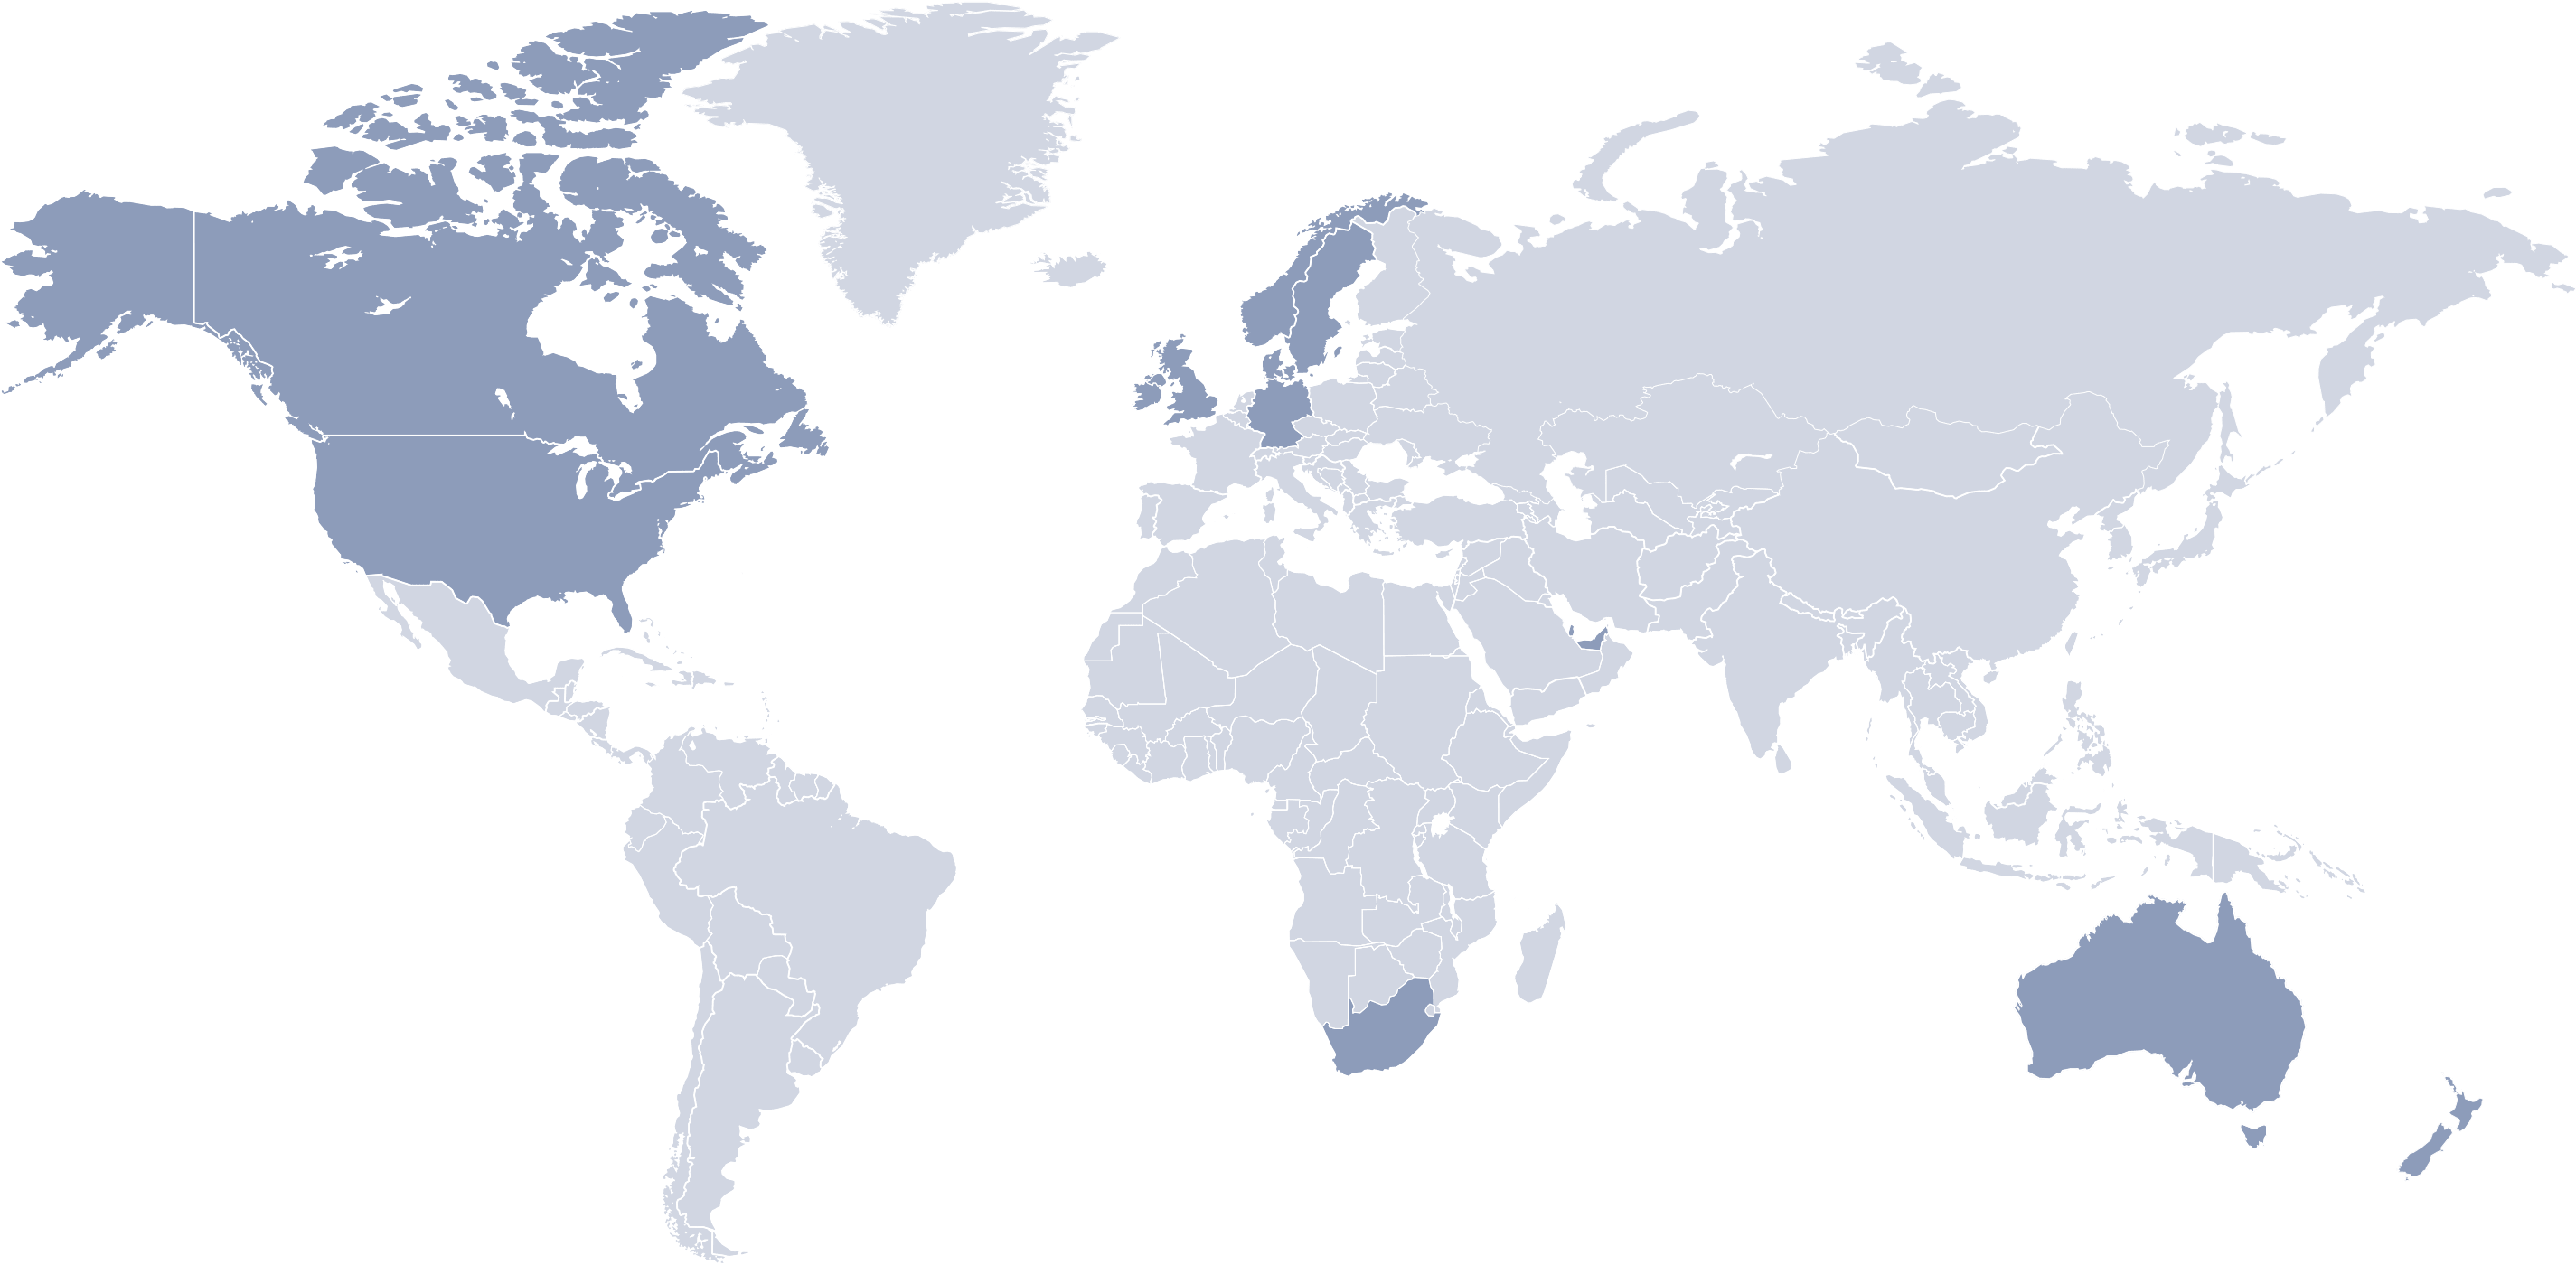 KMI Brands' Global Presence